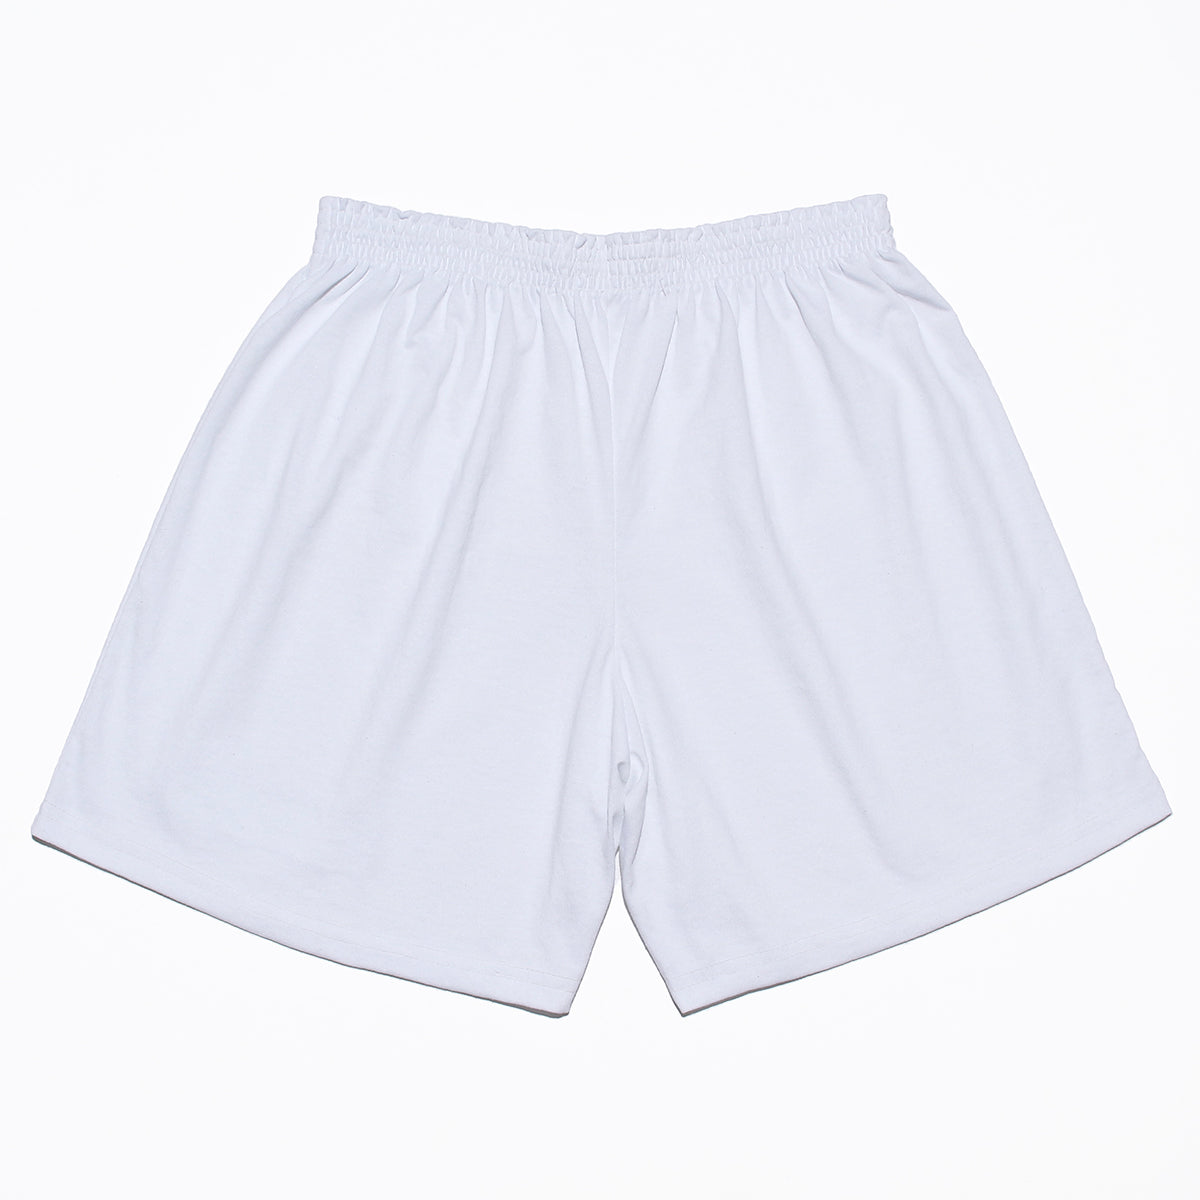 Vaults101®︎ CHILL SHORTS